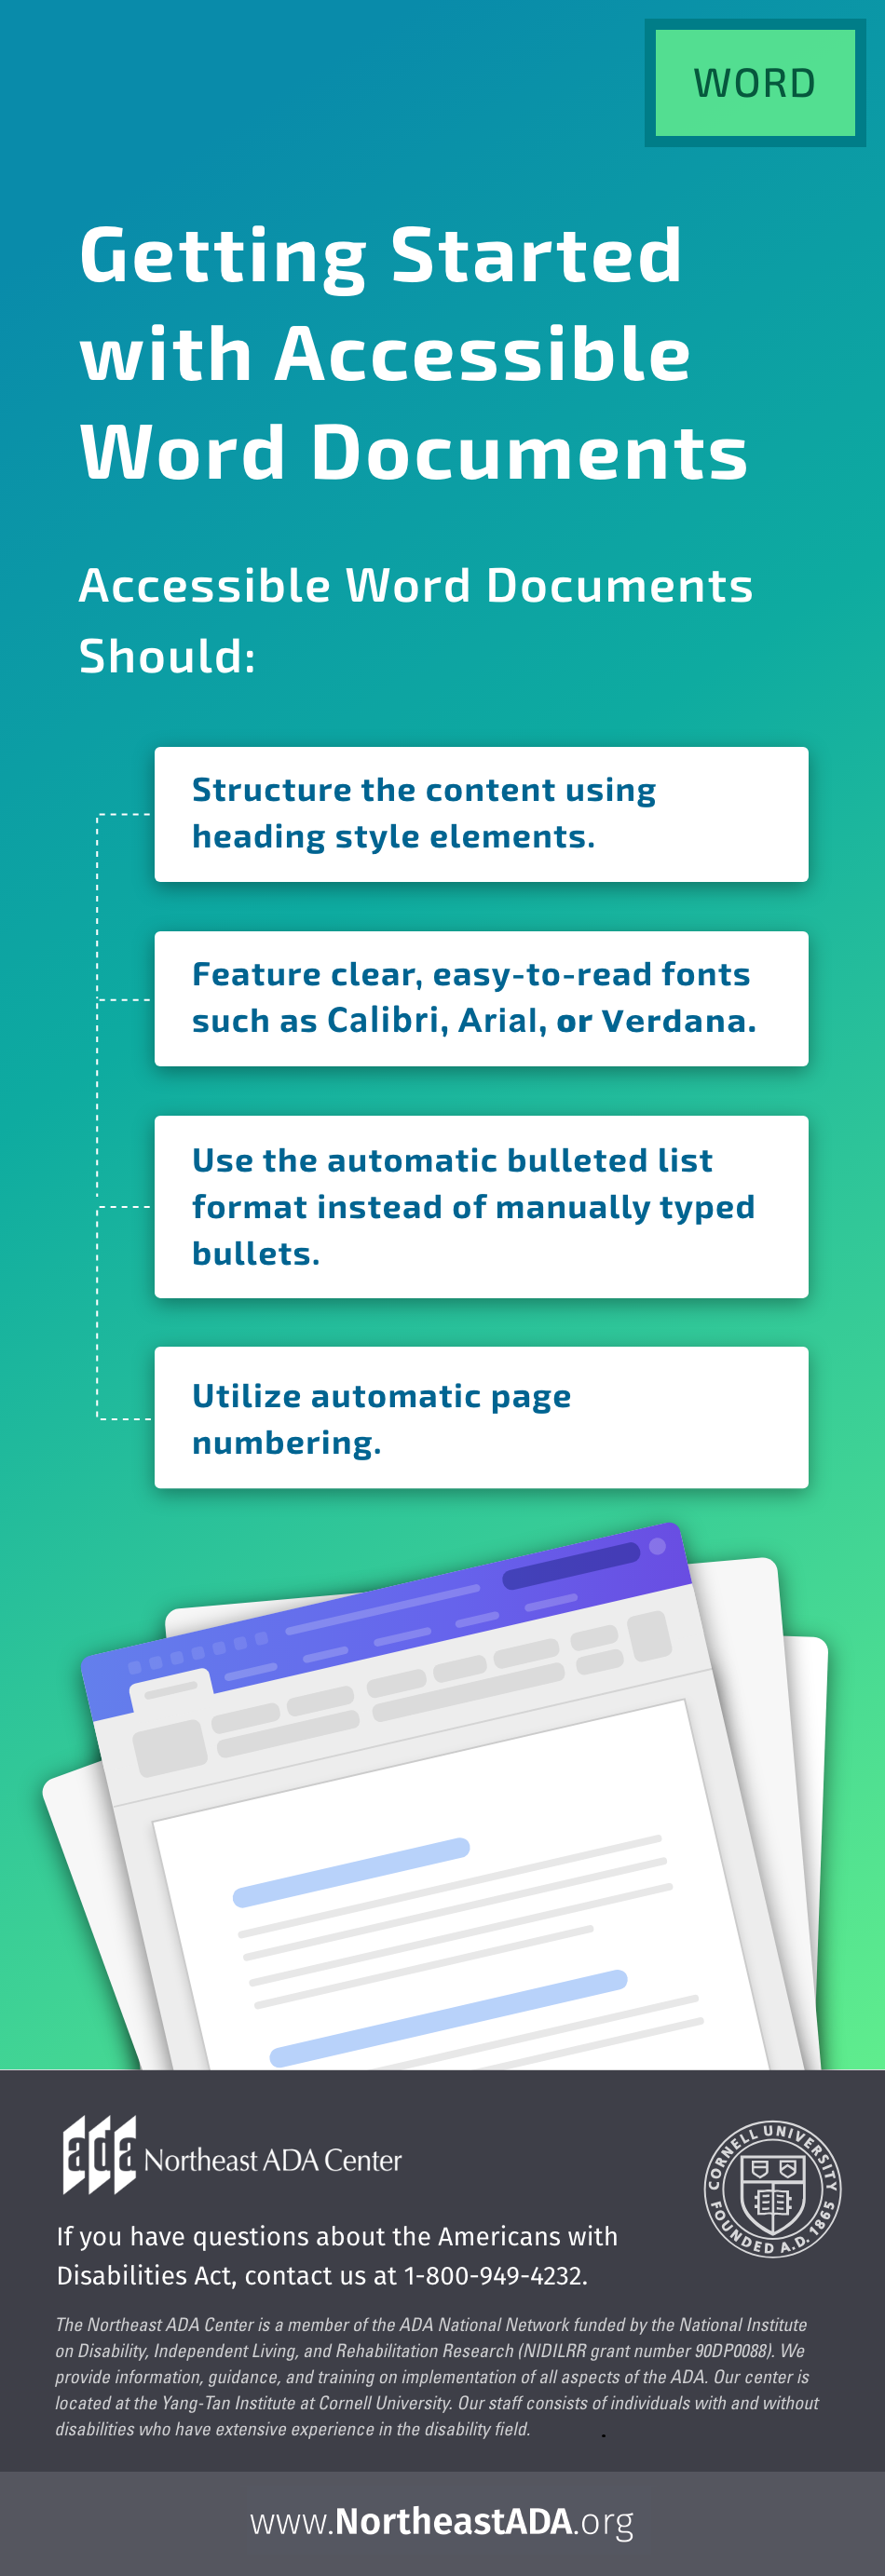 Infographic titled 'Getting Started with Accessible Word Documents' featuring an image of Microsoft Word and several text boxes with tips.